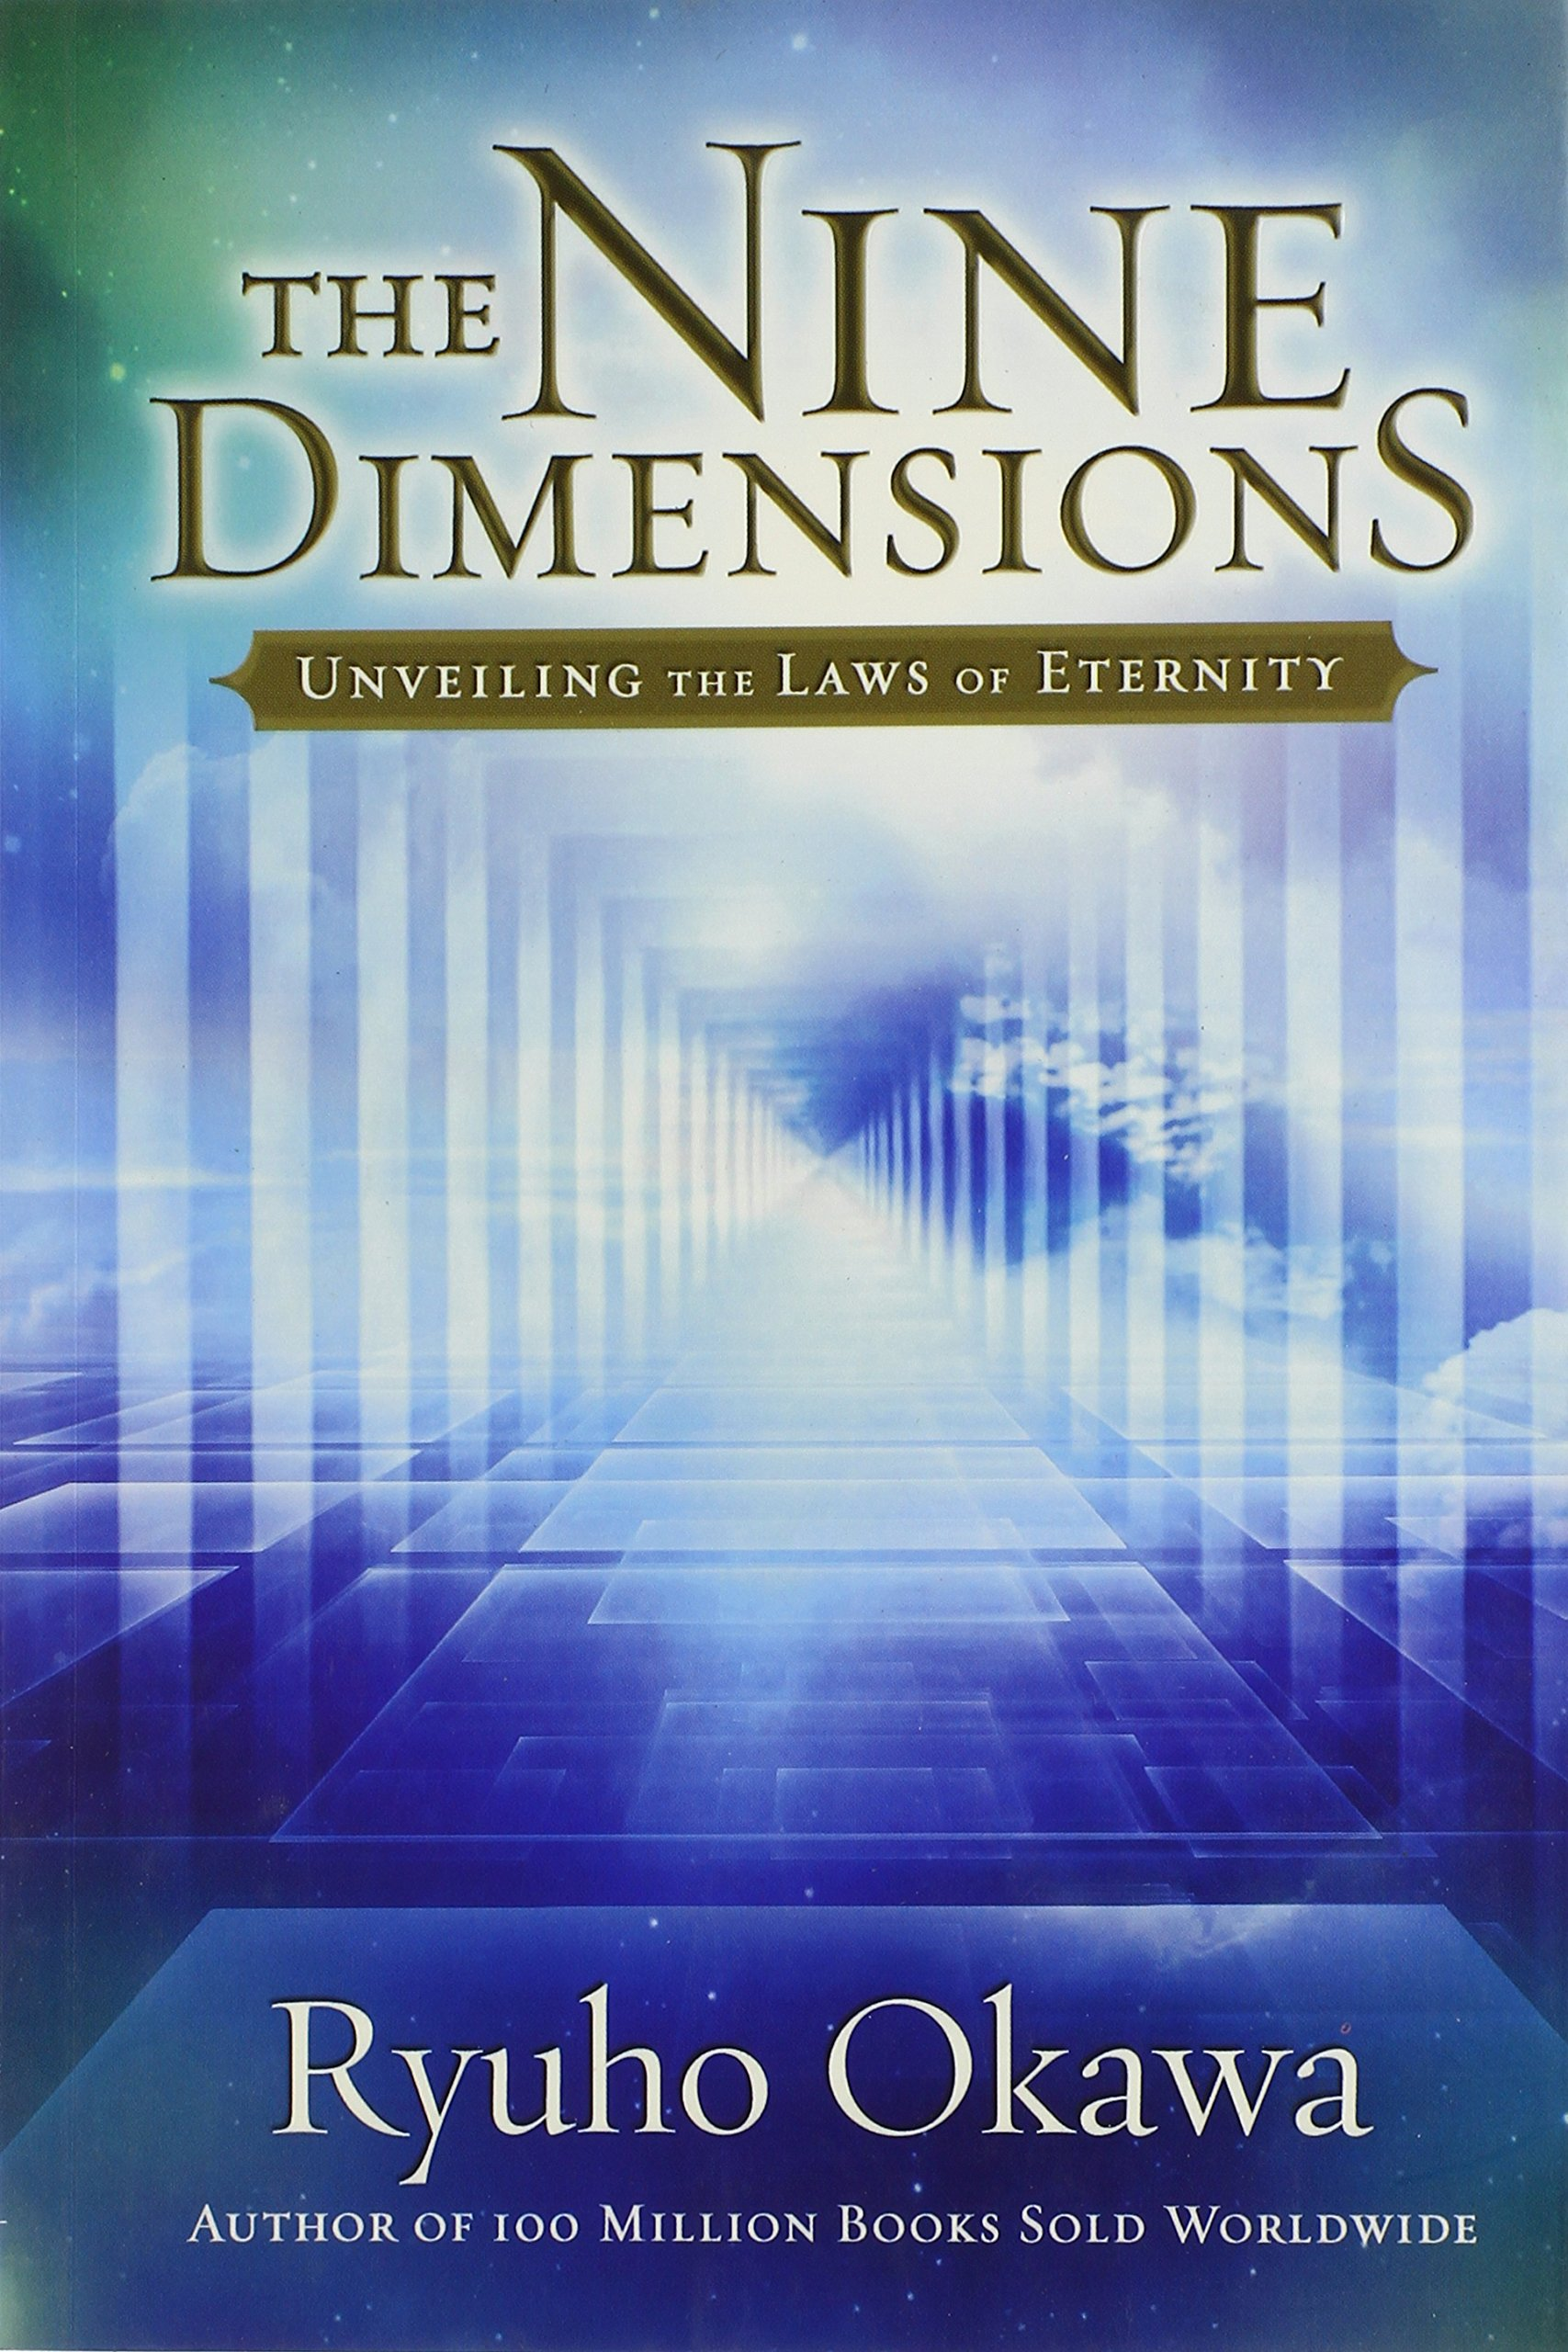 Download The Nine Dimensions: Unveiling the Laws of Eternity PDF